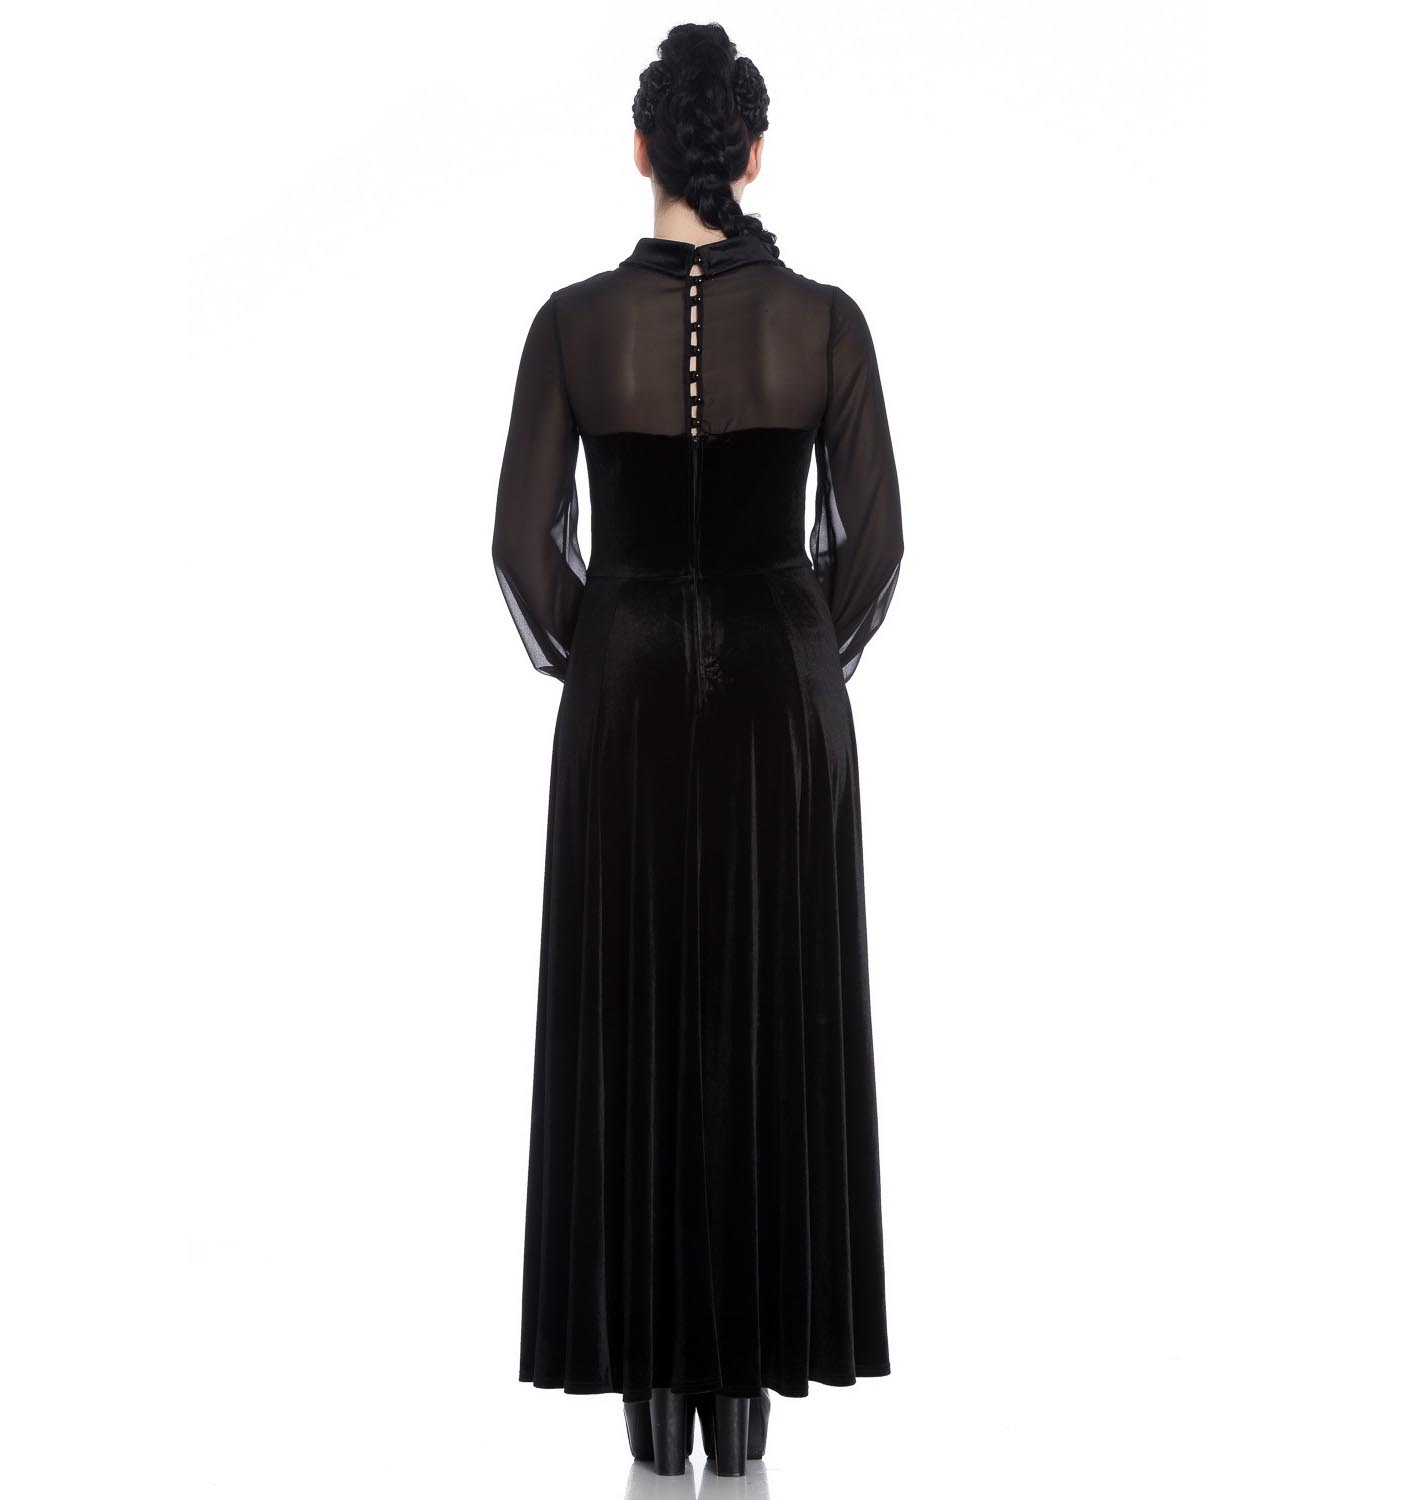 Hell-Bunny-Vampire-Goth-Elegant-Maxi-Dress-ESTELLE-Black-Velvet-Mesh-All-Sizes thumbnail 9